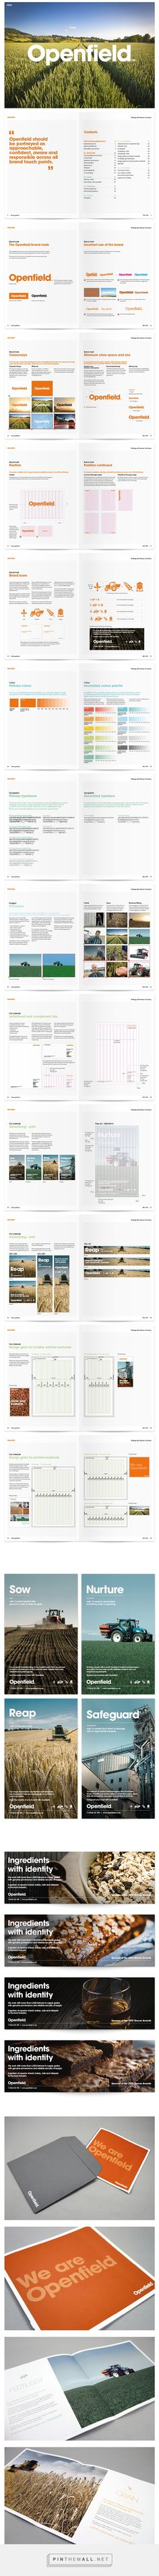 Openfield - Brand development and guidelines